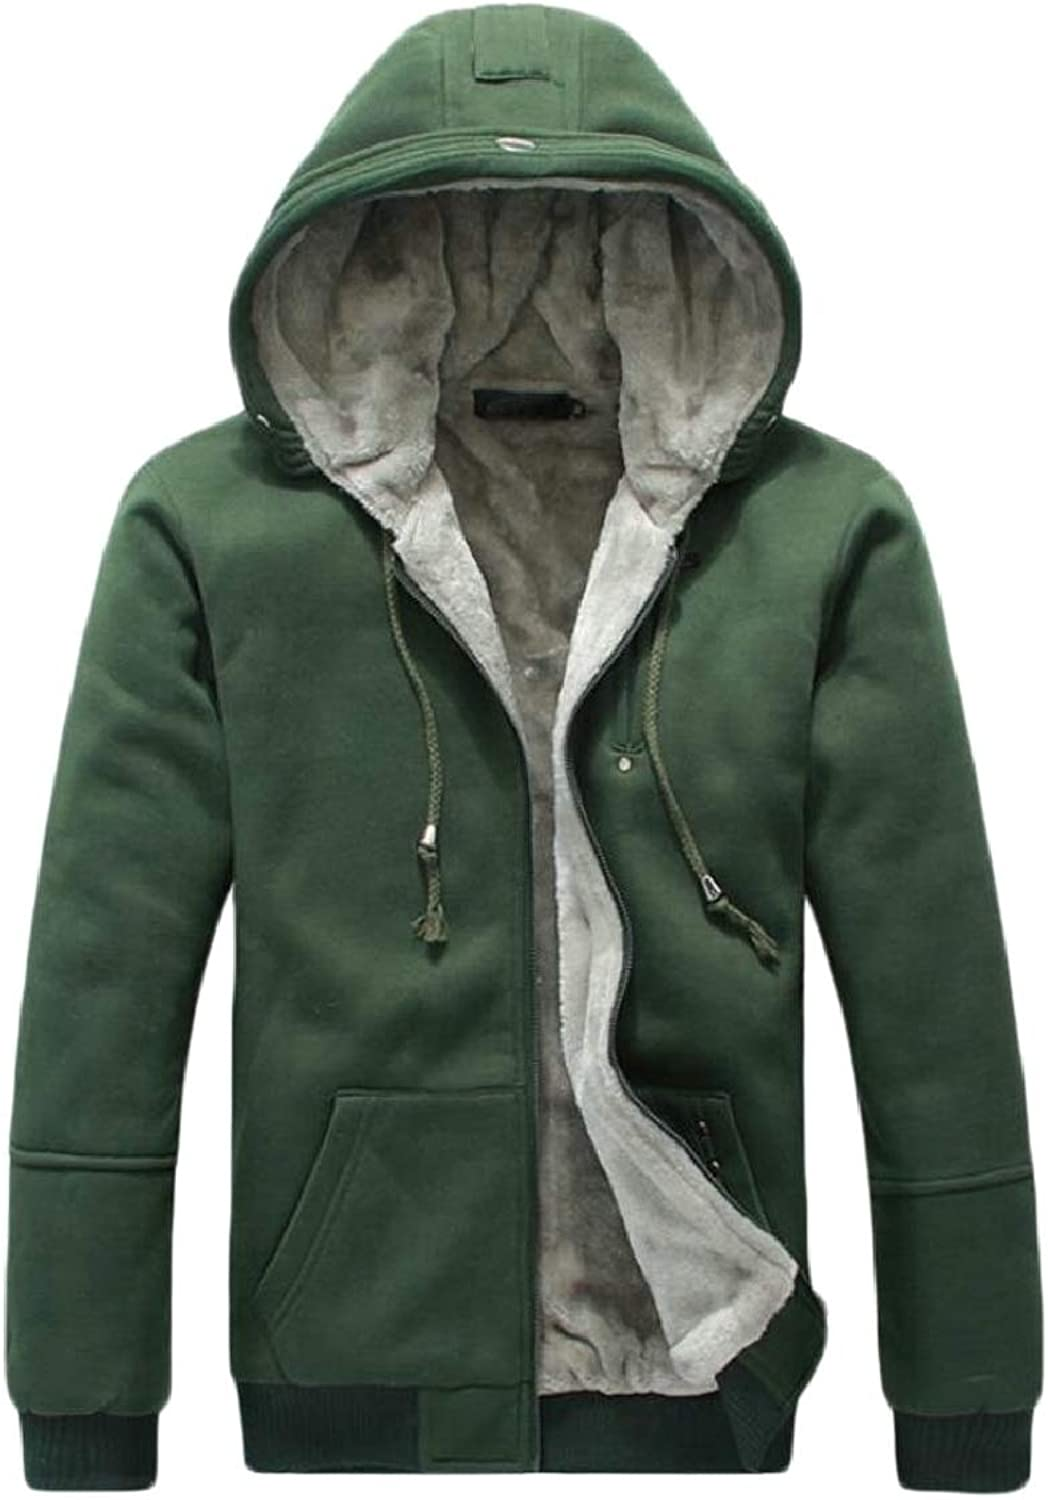 2a3f61eb60a4 Xswsy XG-CA Mens Casual Hoodie Front-Zip Solid color Fleece ...